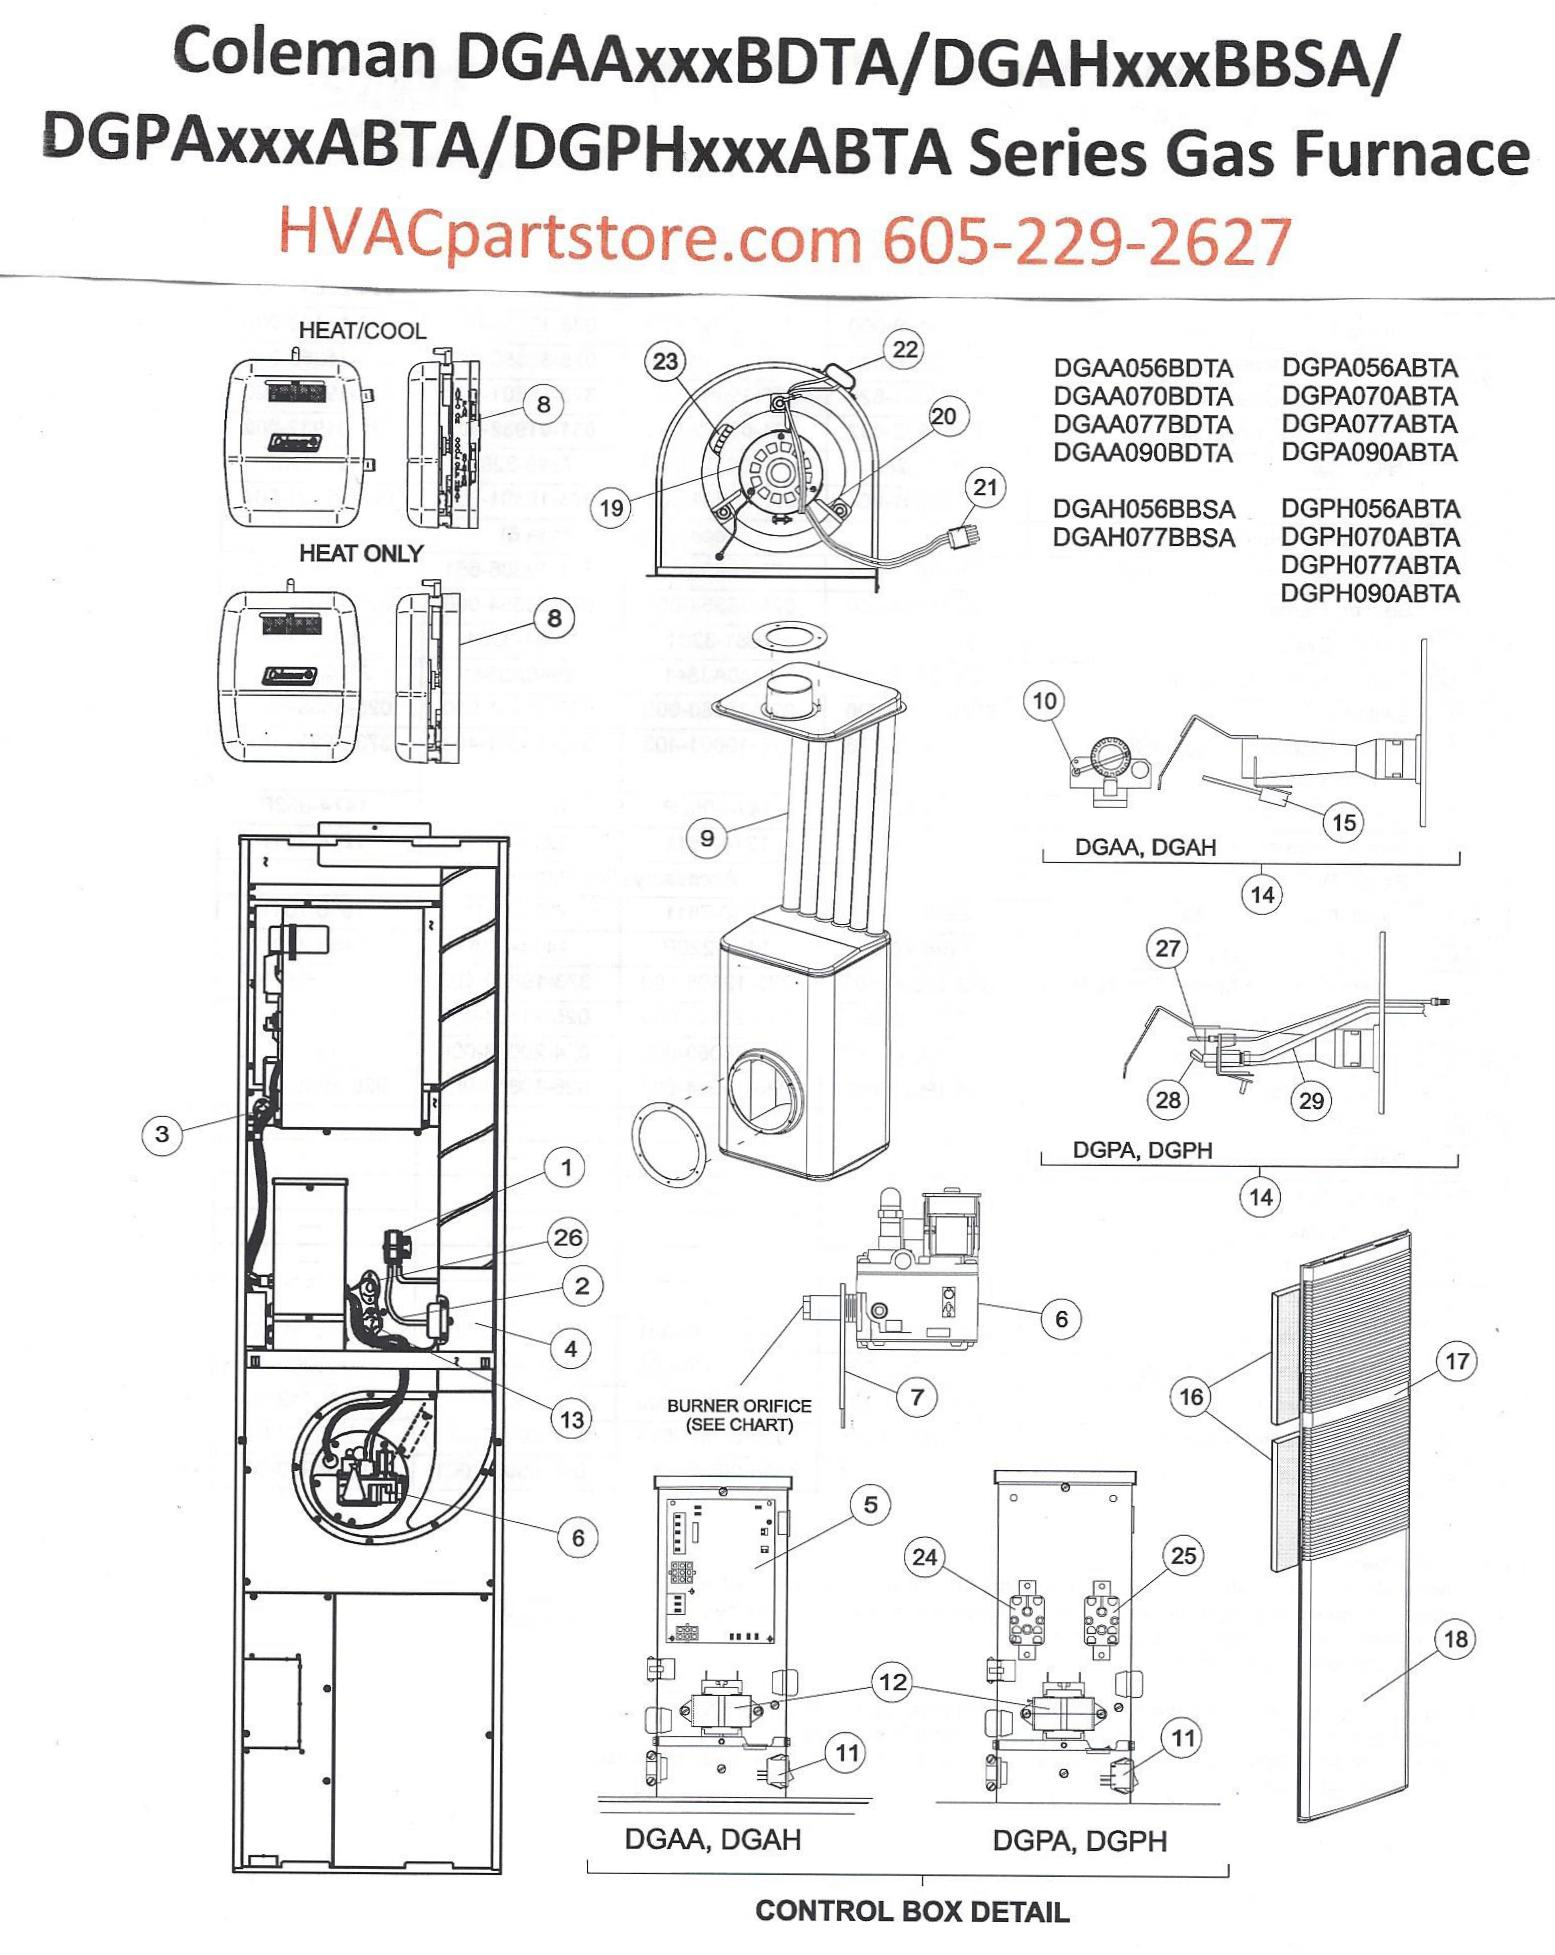 Dgaa077bdta Evcon Wiring Diagram Guide And Troubleshooting Of Coleman Furnace Board Gas Parts Hvacpartstore Rh Myshopify Com Electric